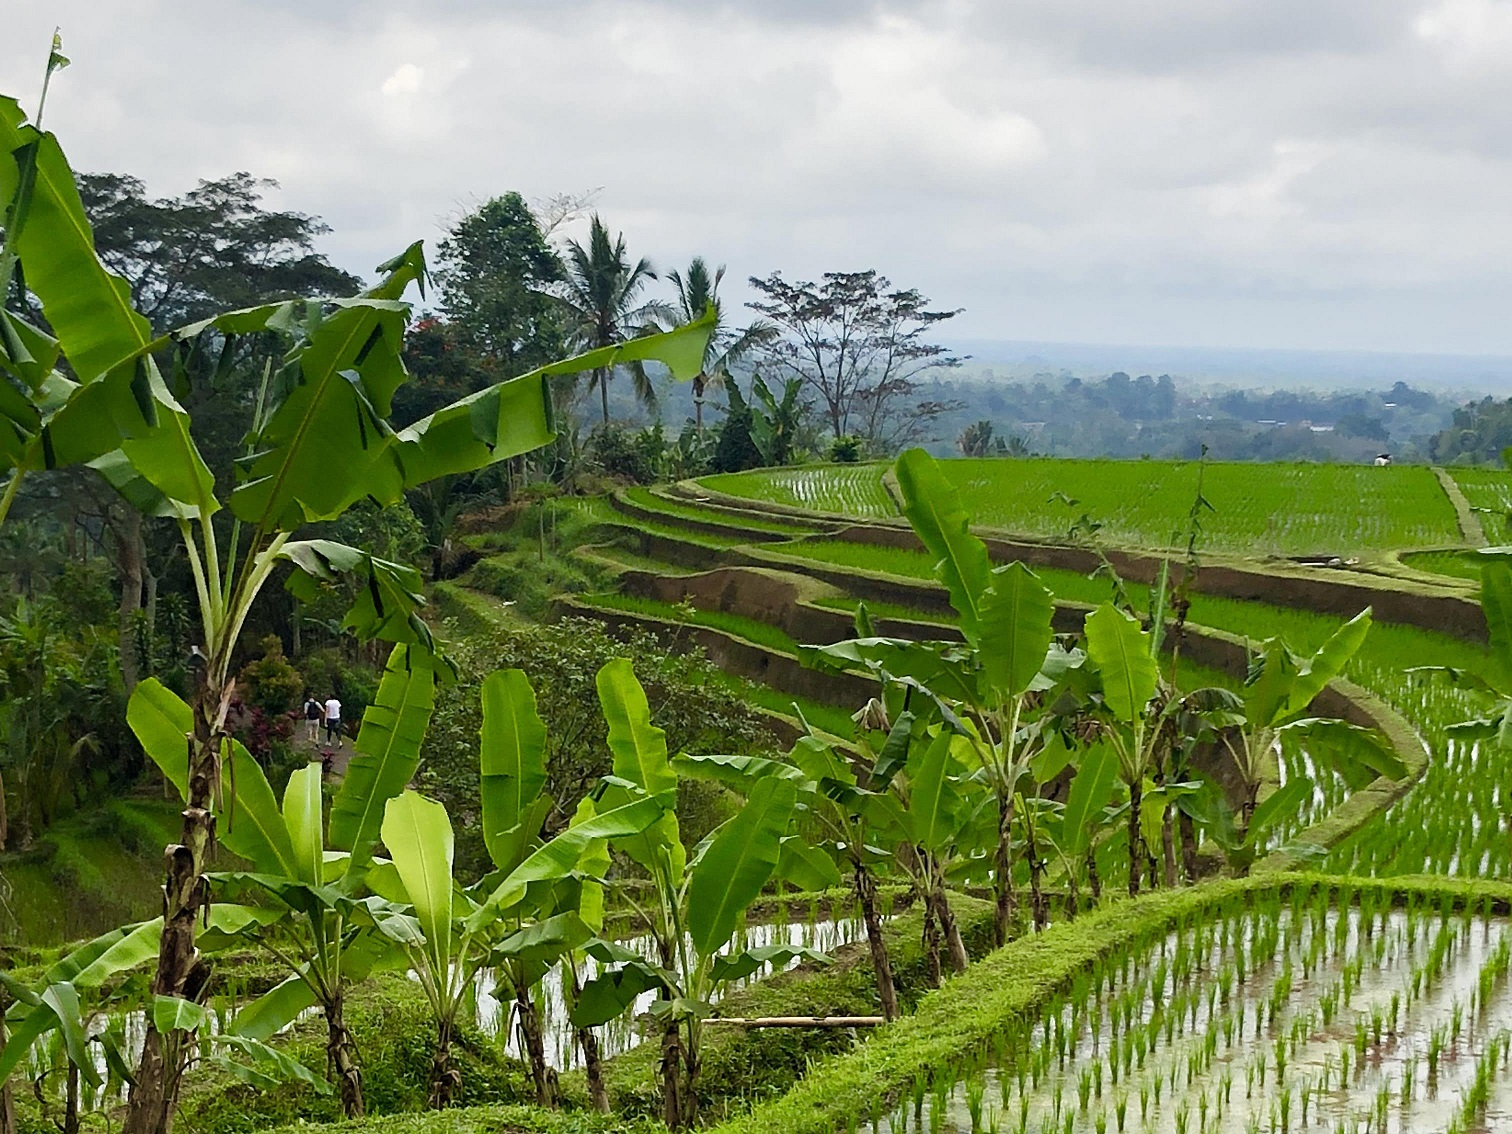 The Balinese Subak has received recognition from international agricultural experts